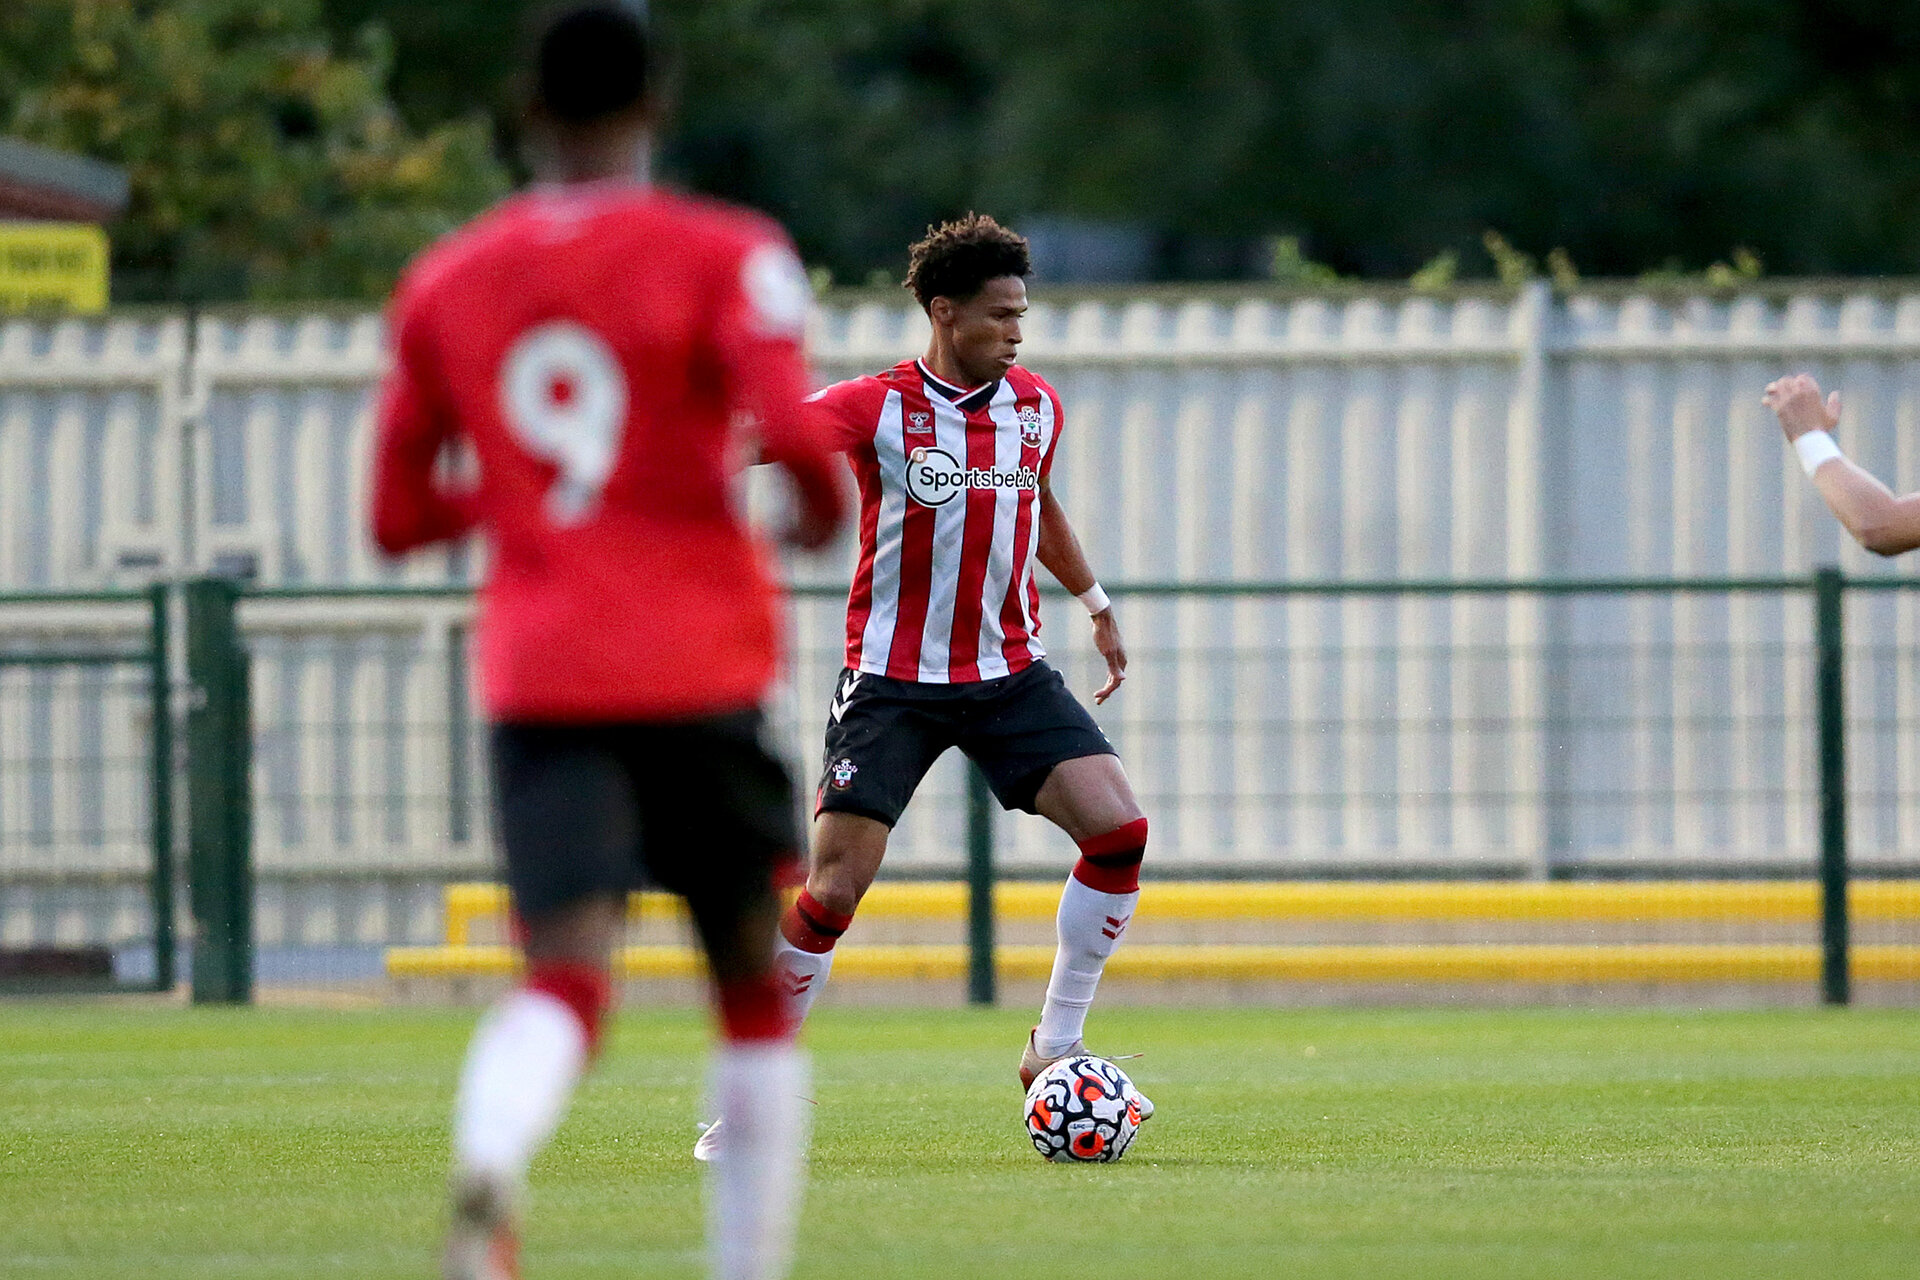 SOUTHAMPTON, ENGLAND - SEPTEMBER 23:  during the Premier League Cup match between Southampton B Team and West Bromwich Albion at Snows Stadium on September 23, 2021 in Southampton, England. (Photo by Isabelle Field/Southampton FC via Getty Images)